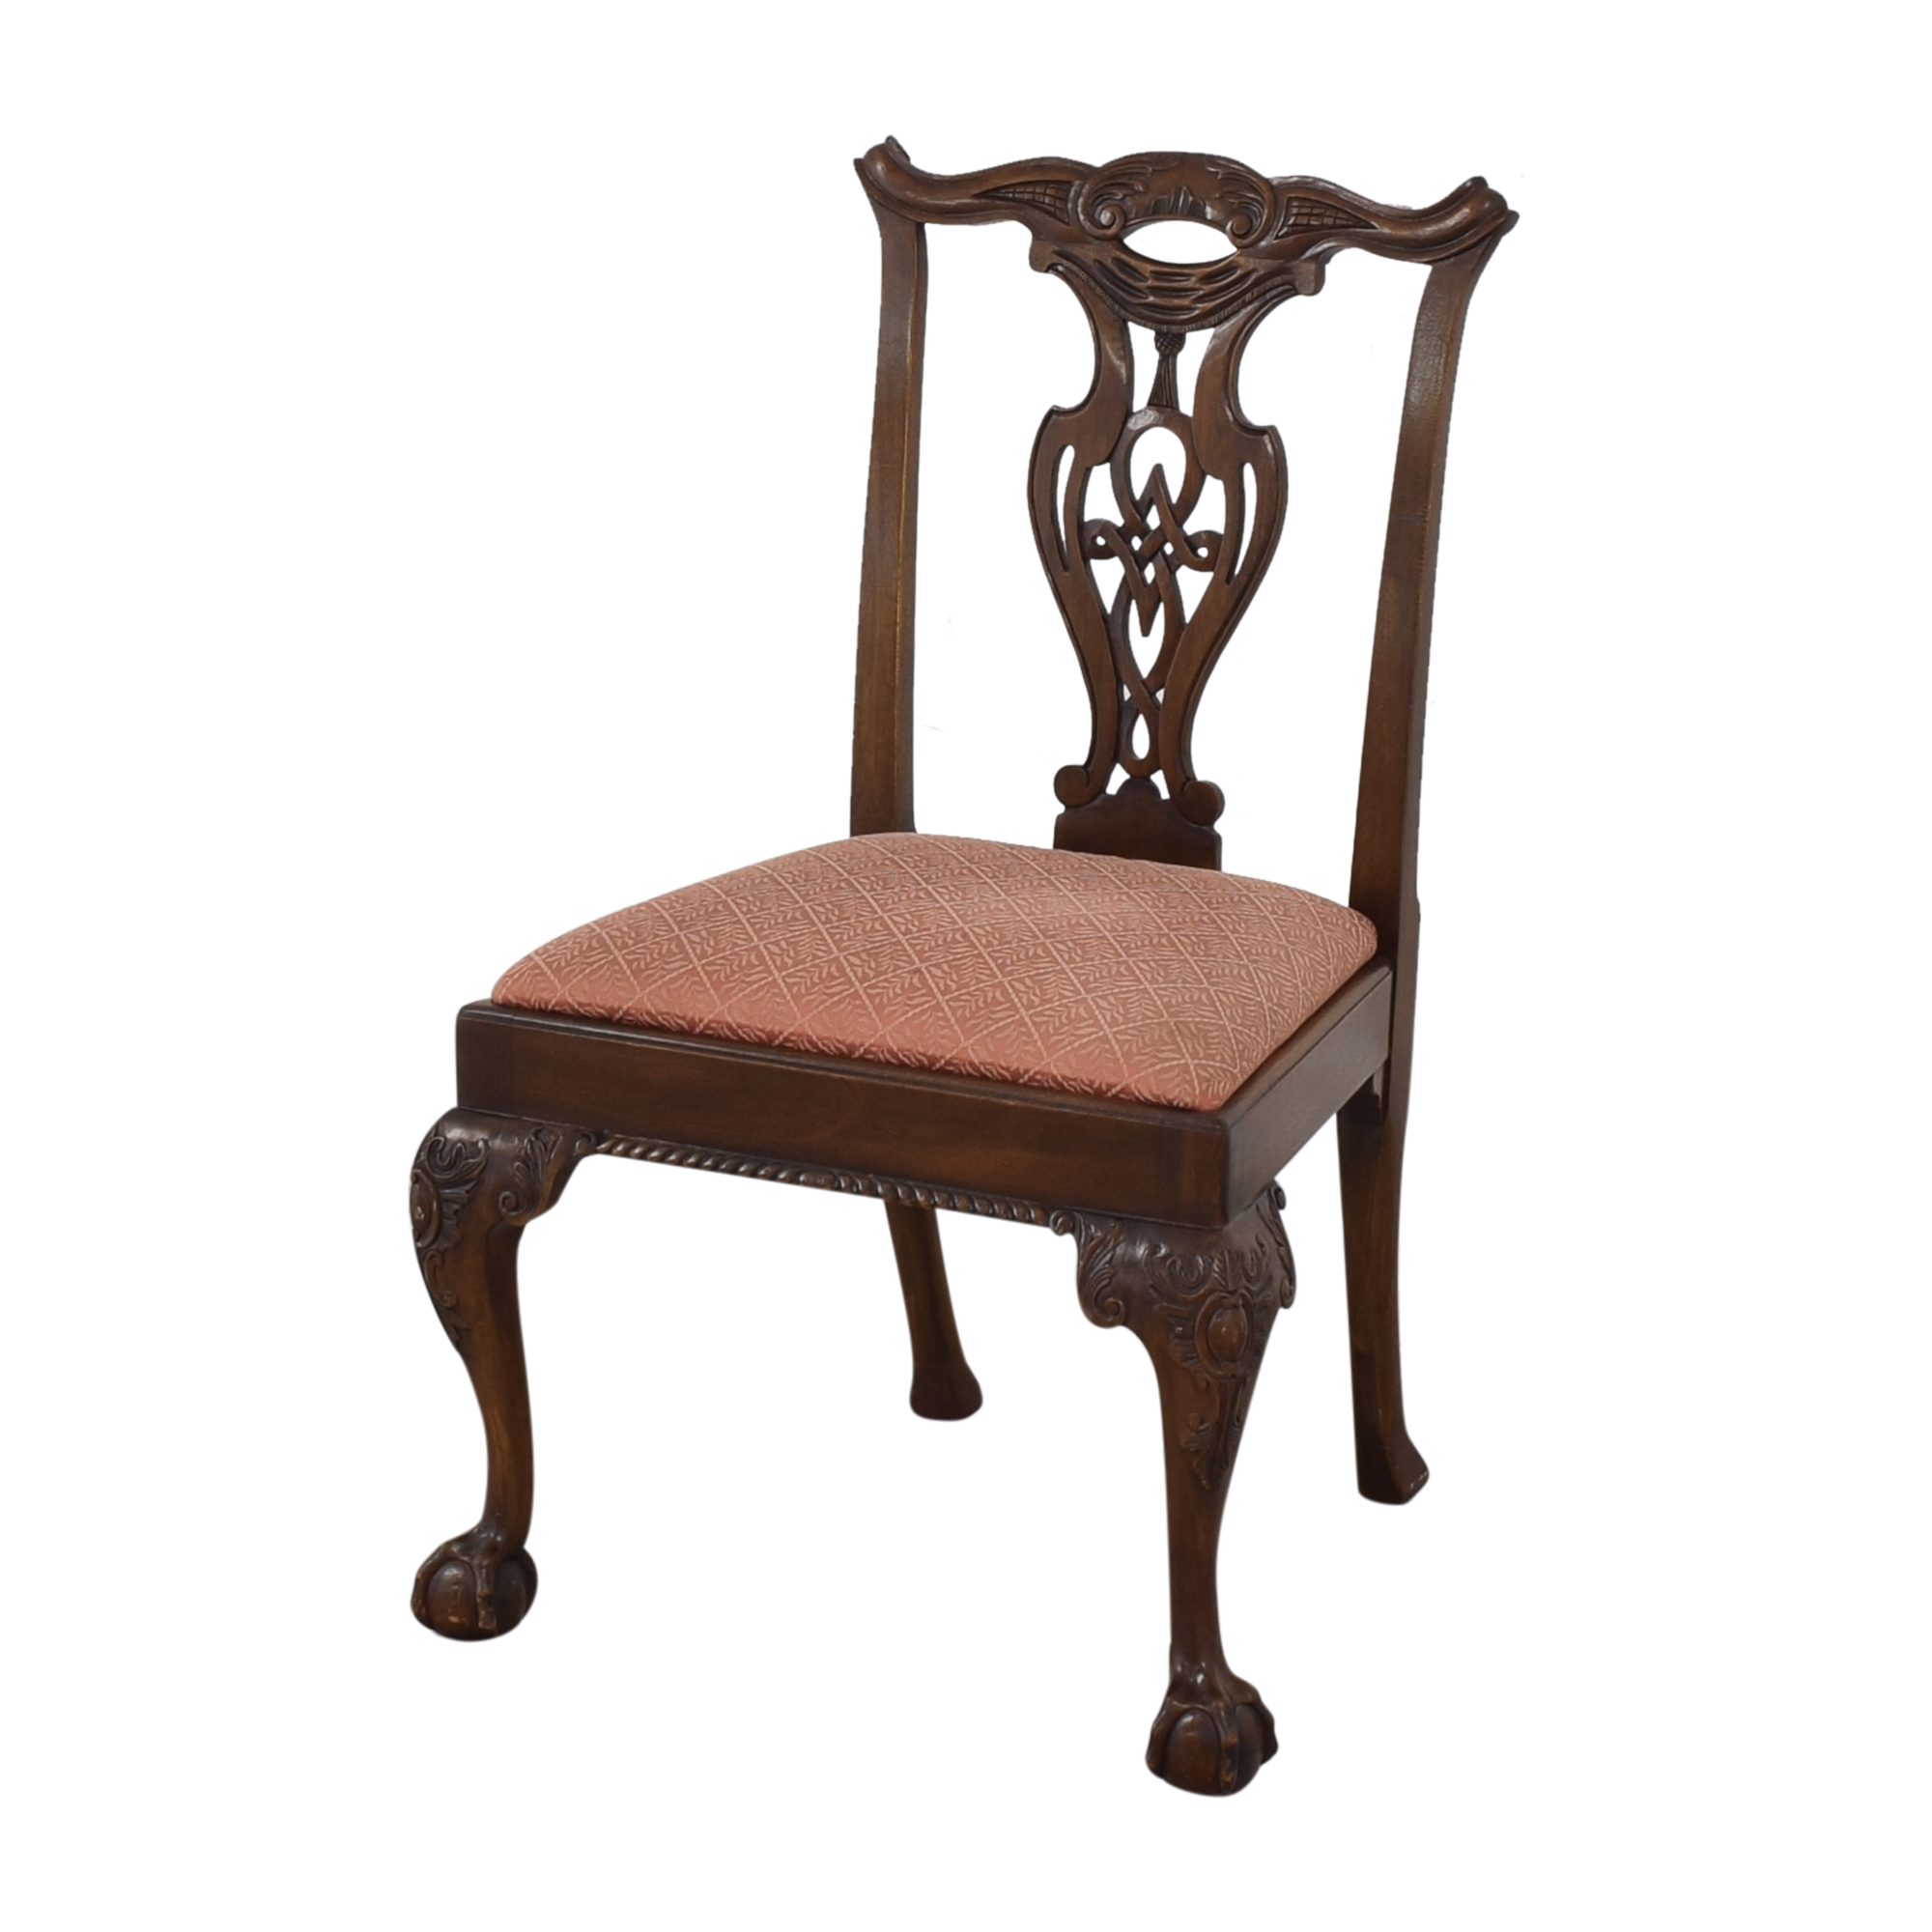 Henredon Furniture Henredon Heirloom Dining Chairs Dining Chairs